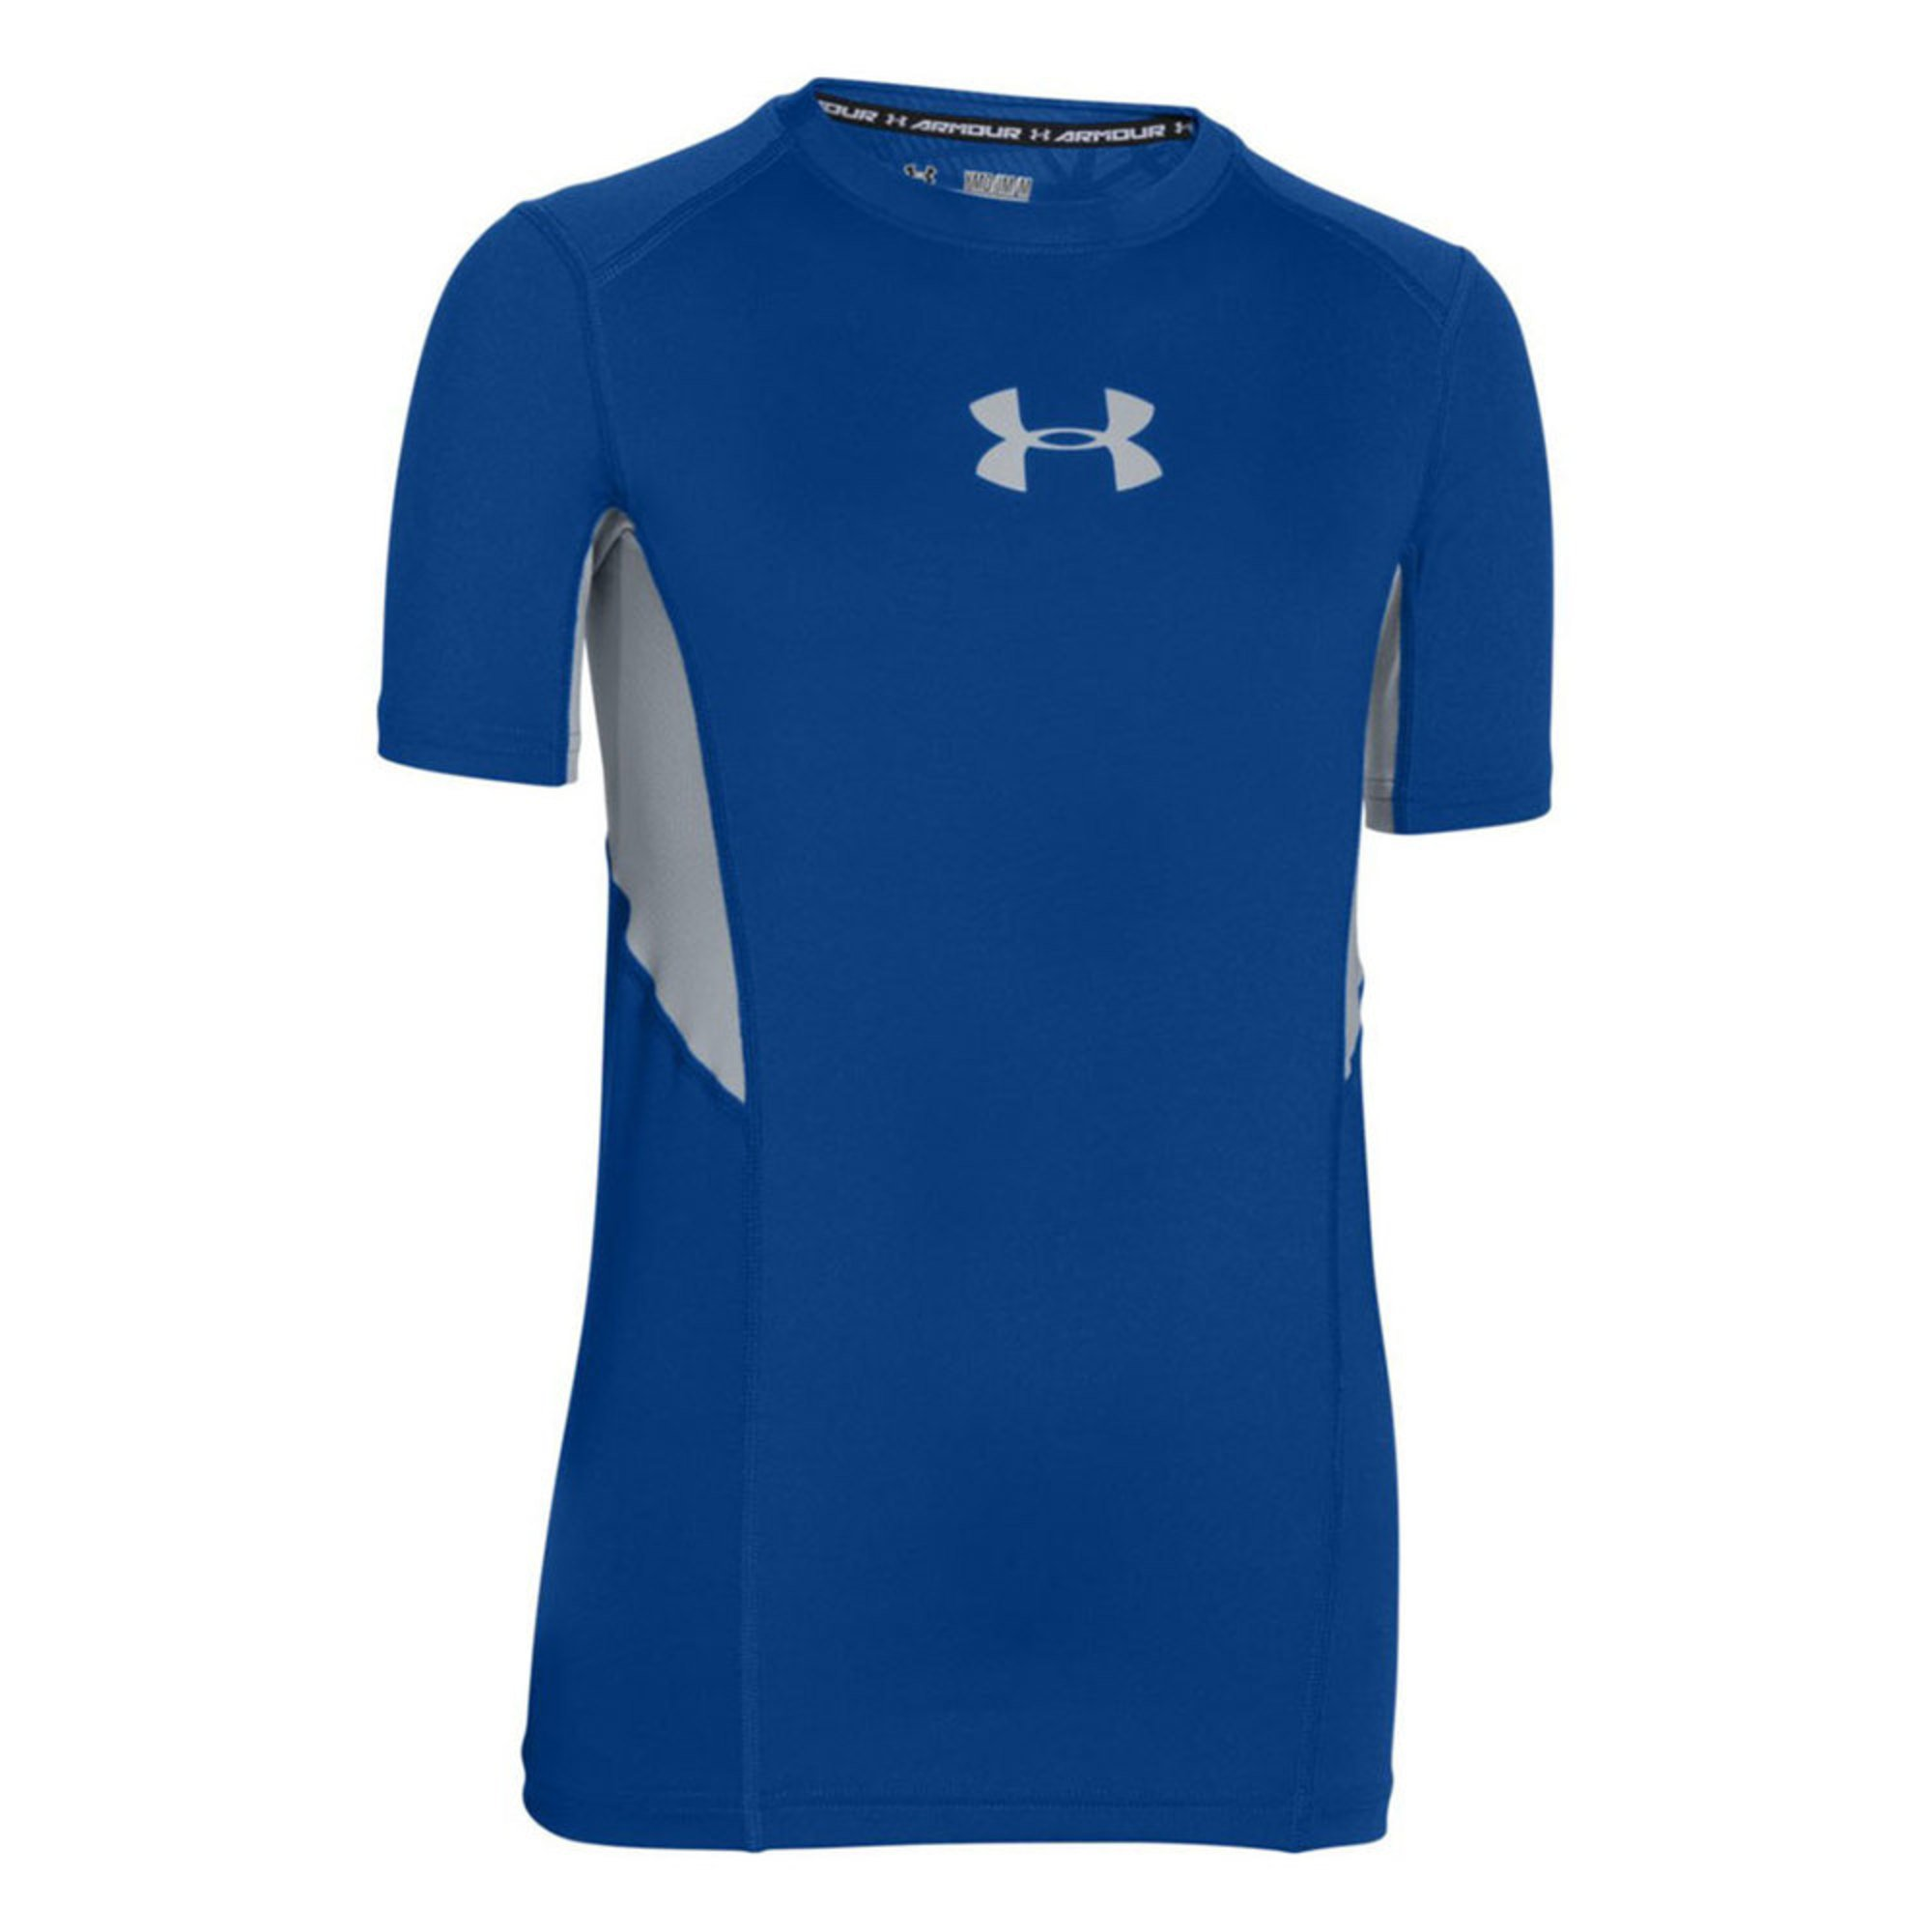 Under Armour Big Boys 39 Coolswitch Tee Big Boys 39 Shirts